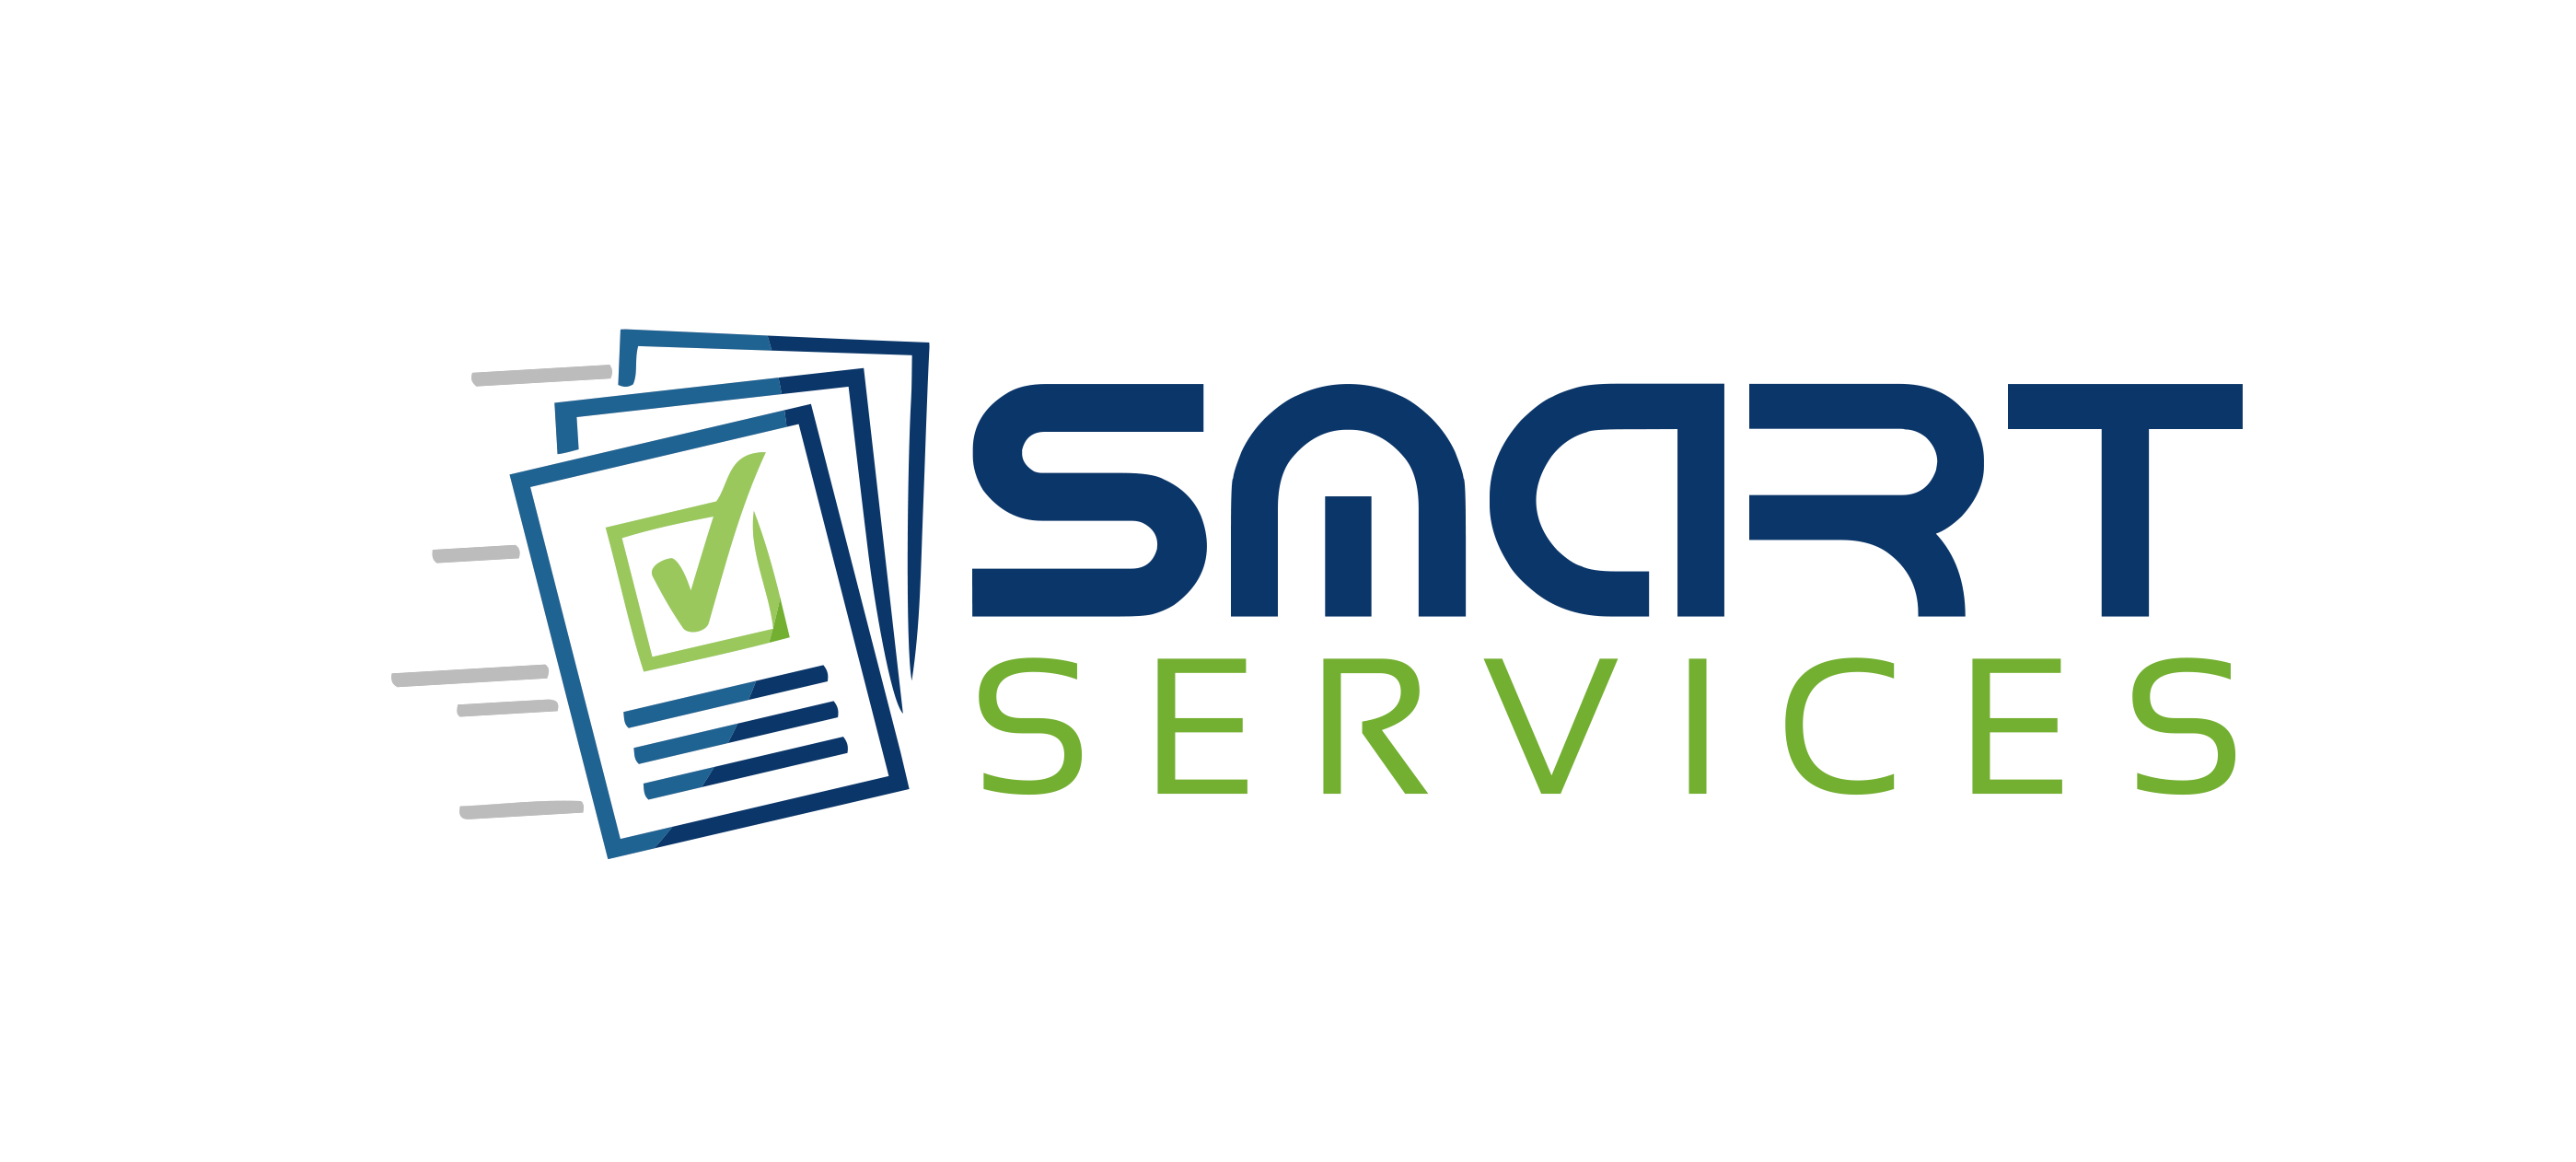 CPA Accountant in Canoga Park, smartservicesla Accountant Services in Canoga Park